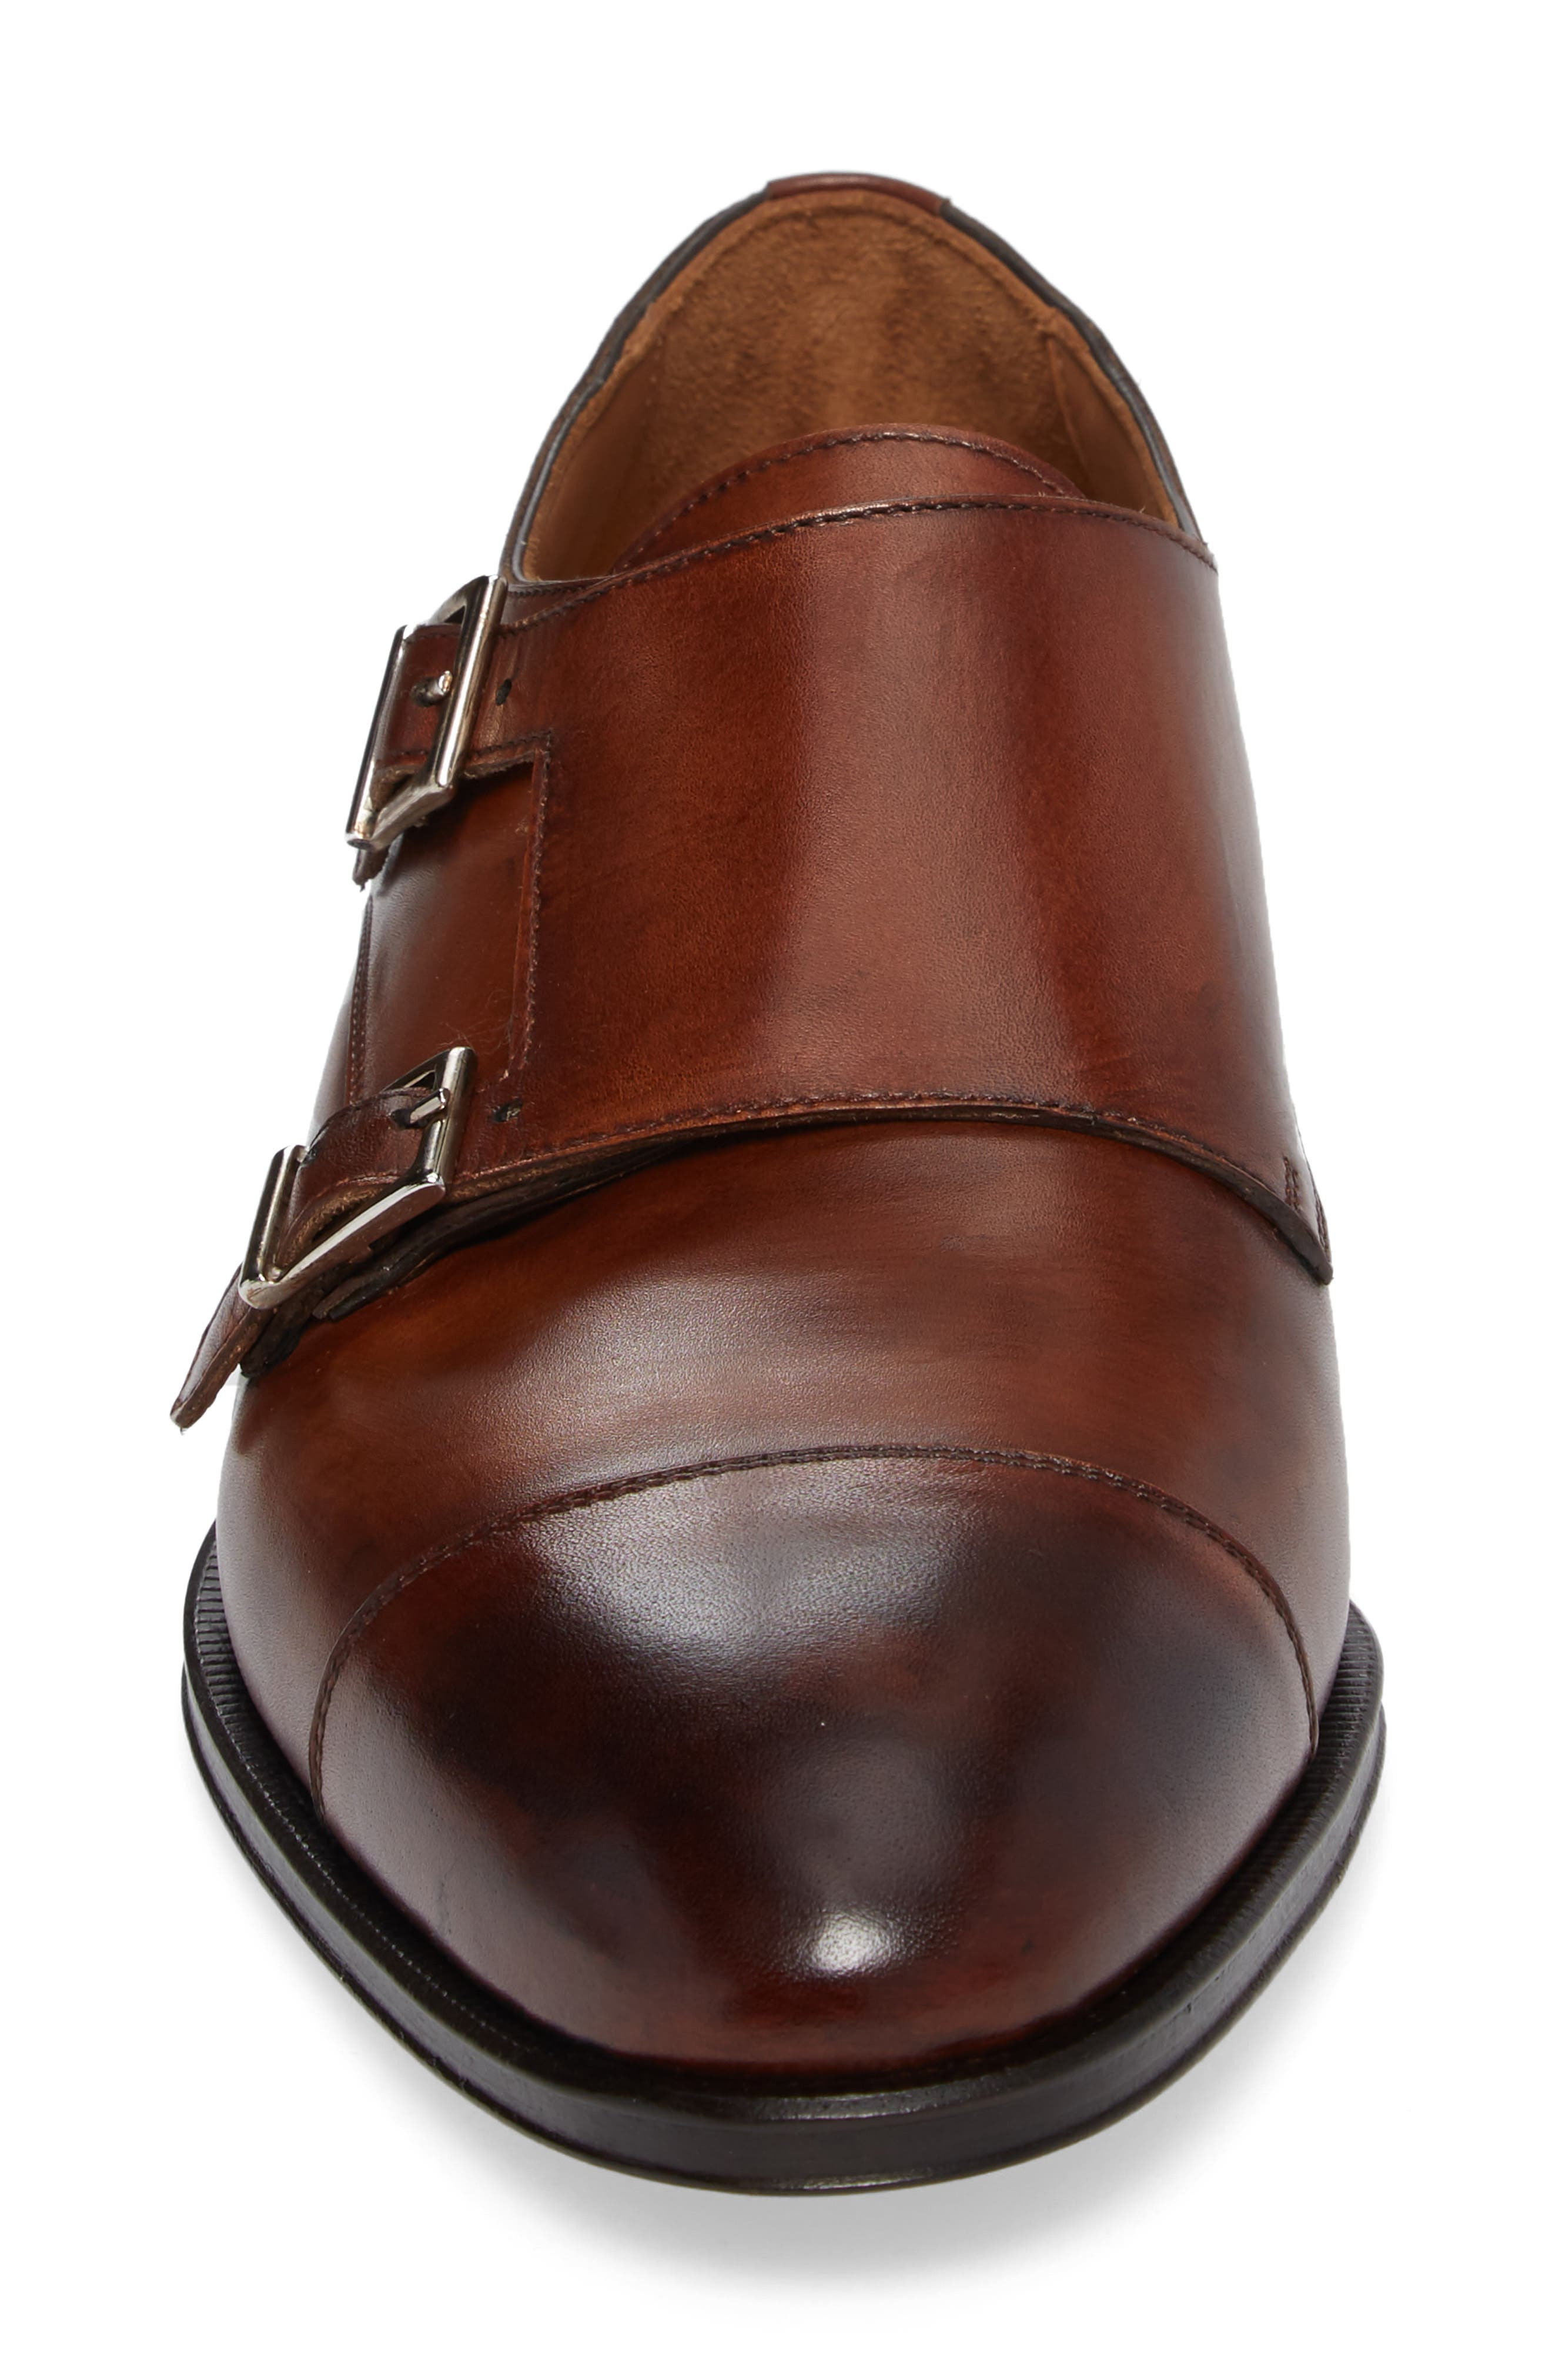 Gallo Bianco Double Monk Strap Shoe,                             Alternate thumbnail 4, color,                             Marble Brown